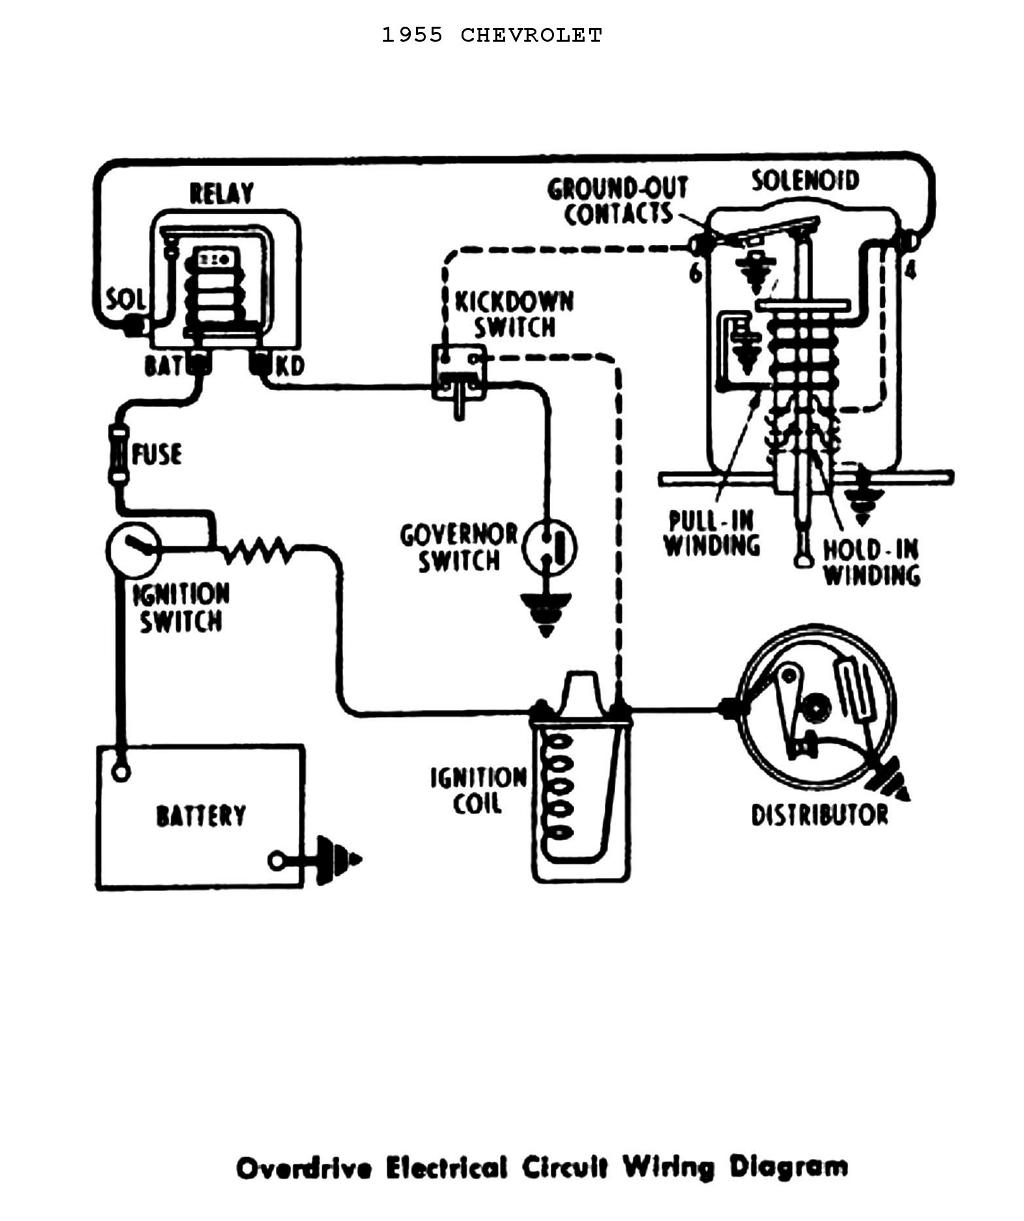 Wiring Diagram On Wiring Diagrams 1 Ford 3000 Tractor Ignition Switch